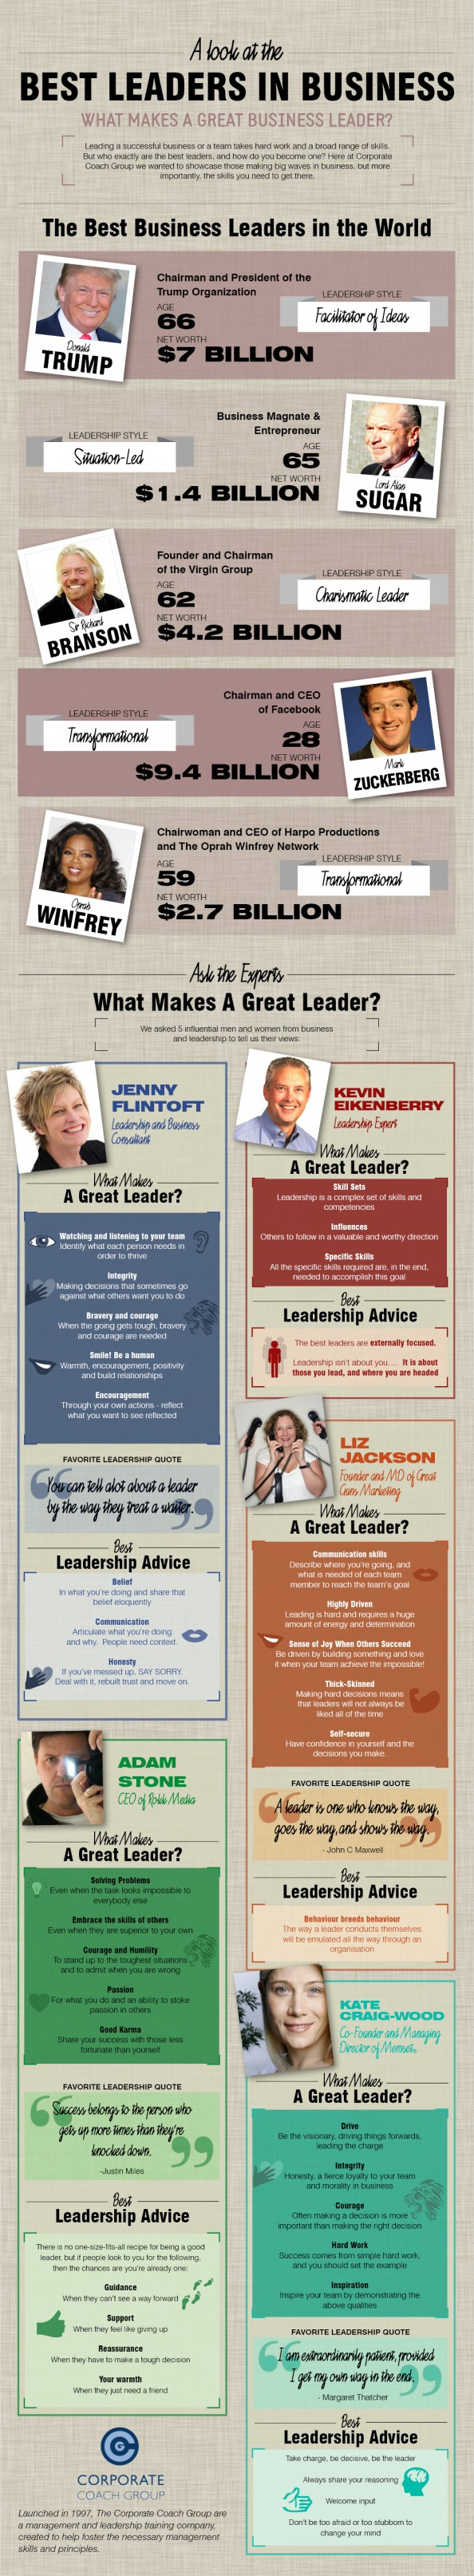 002 What Makes a Great Leader Infographic Leadership